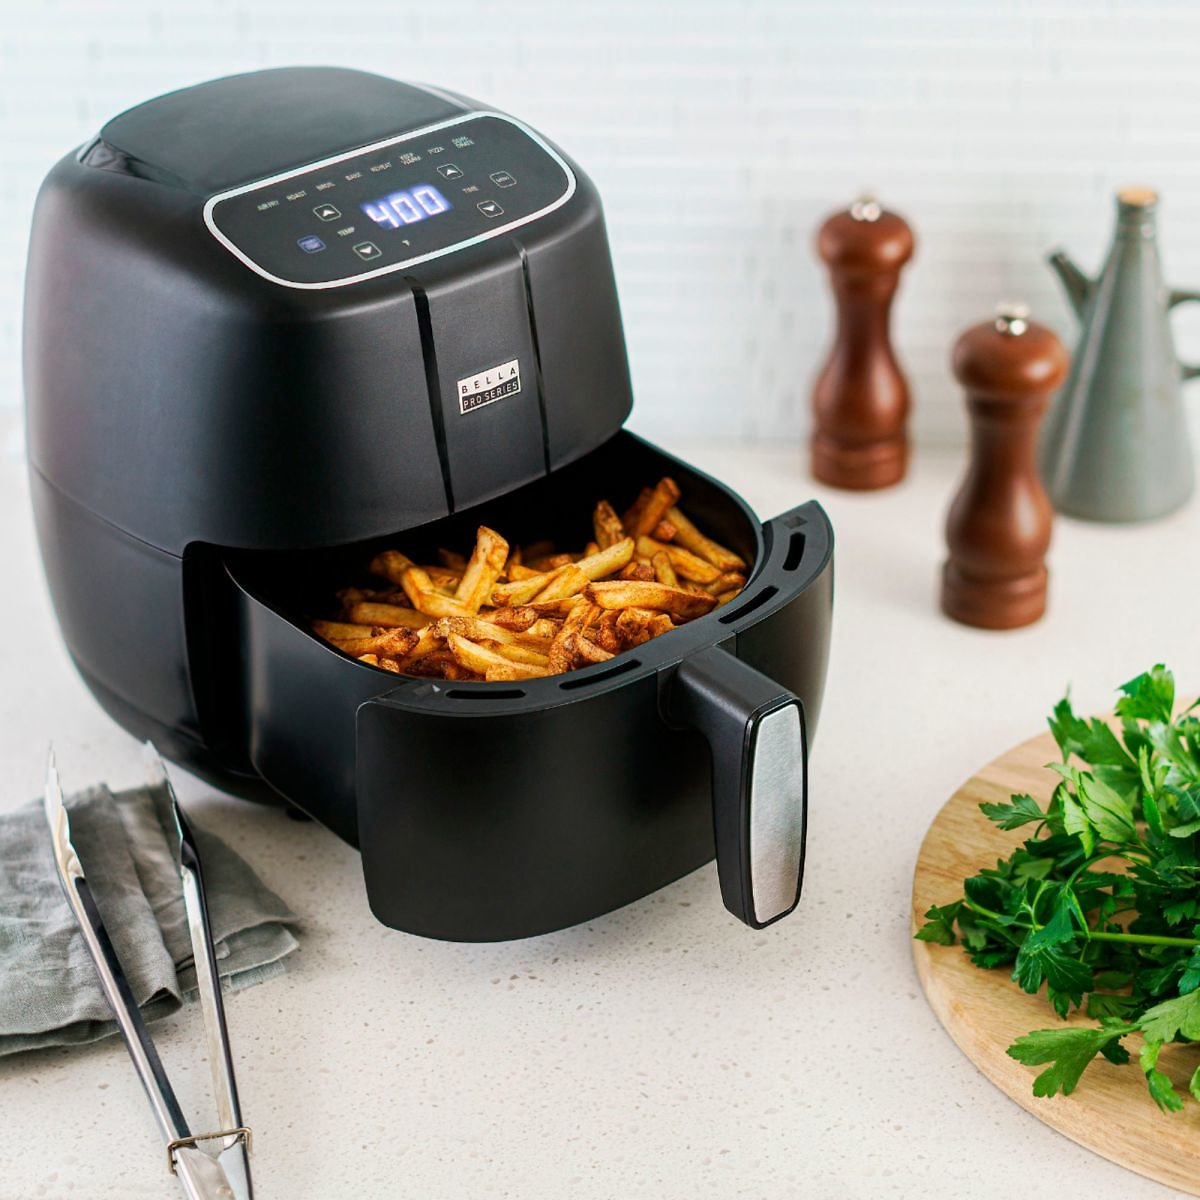 Bella Pro Series 4-Qt. Touchscreen Air Fryer